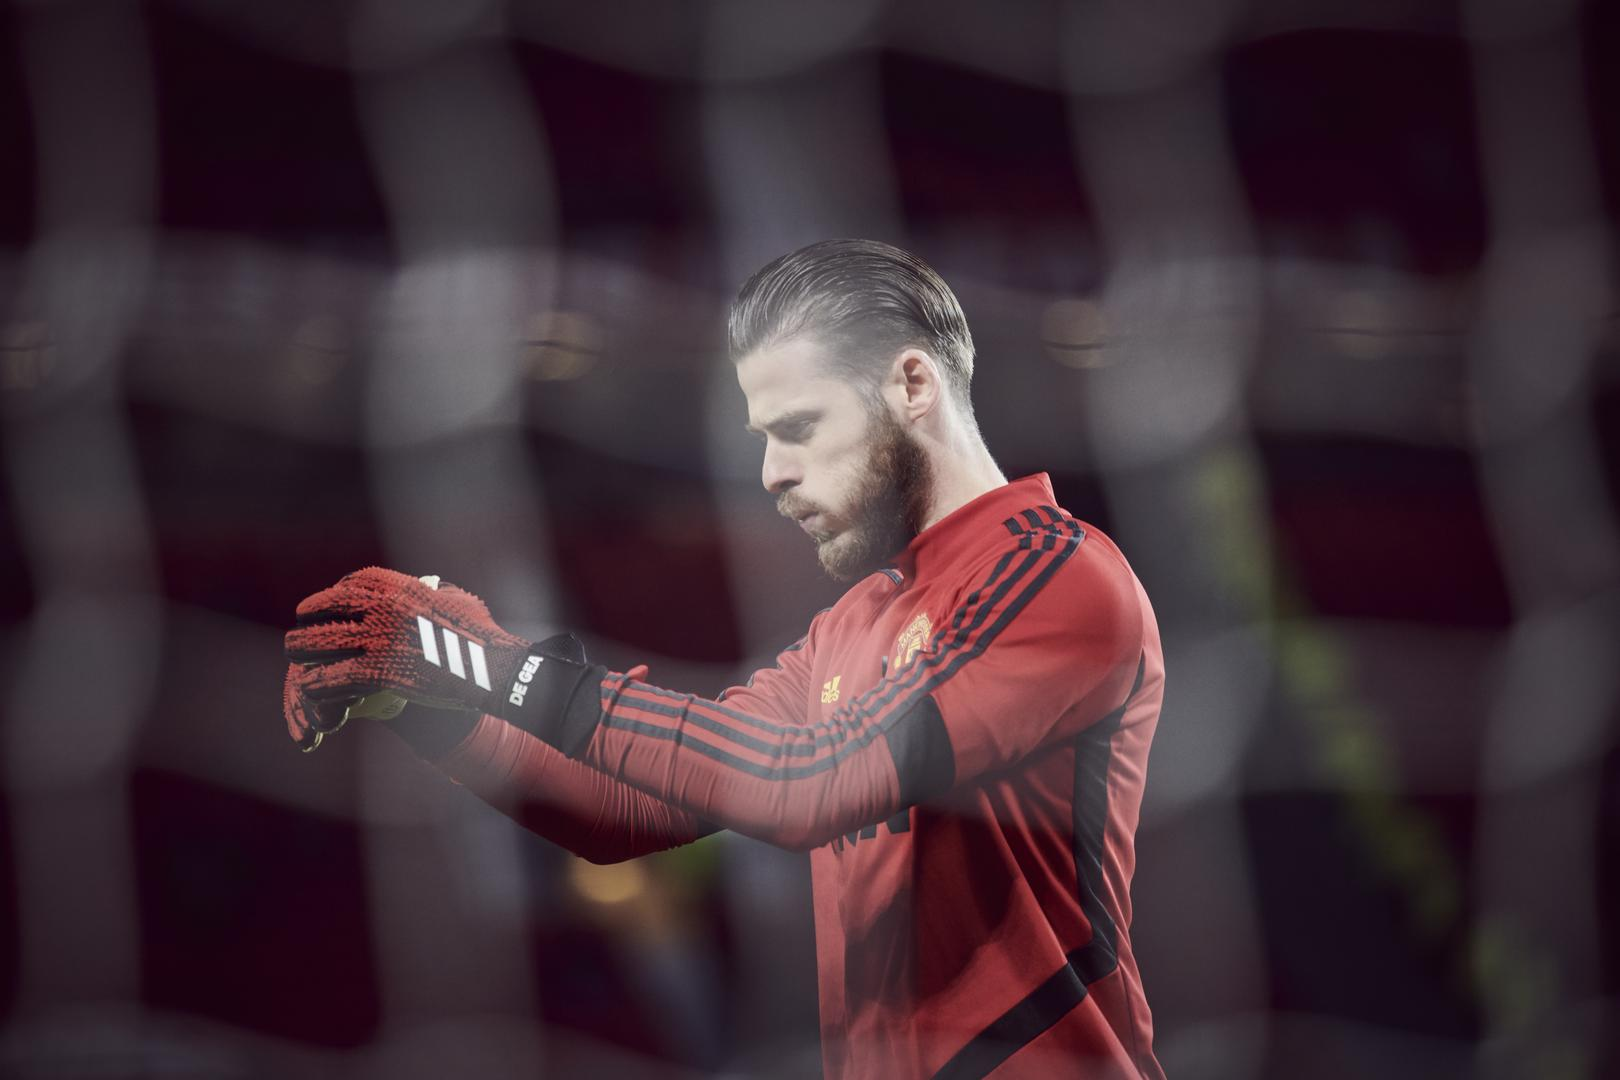 David De Gea warms up for a Manchester United game.